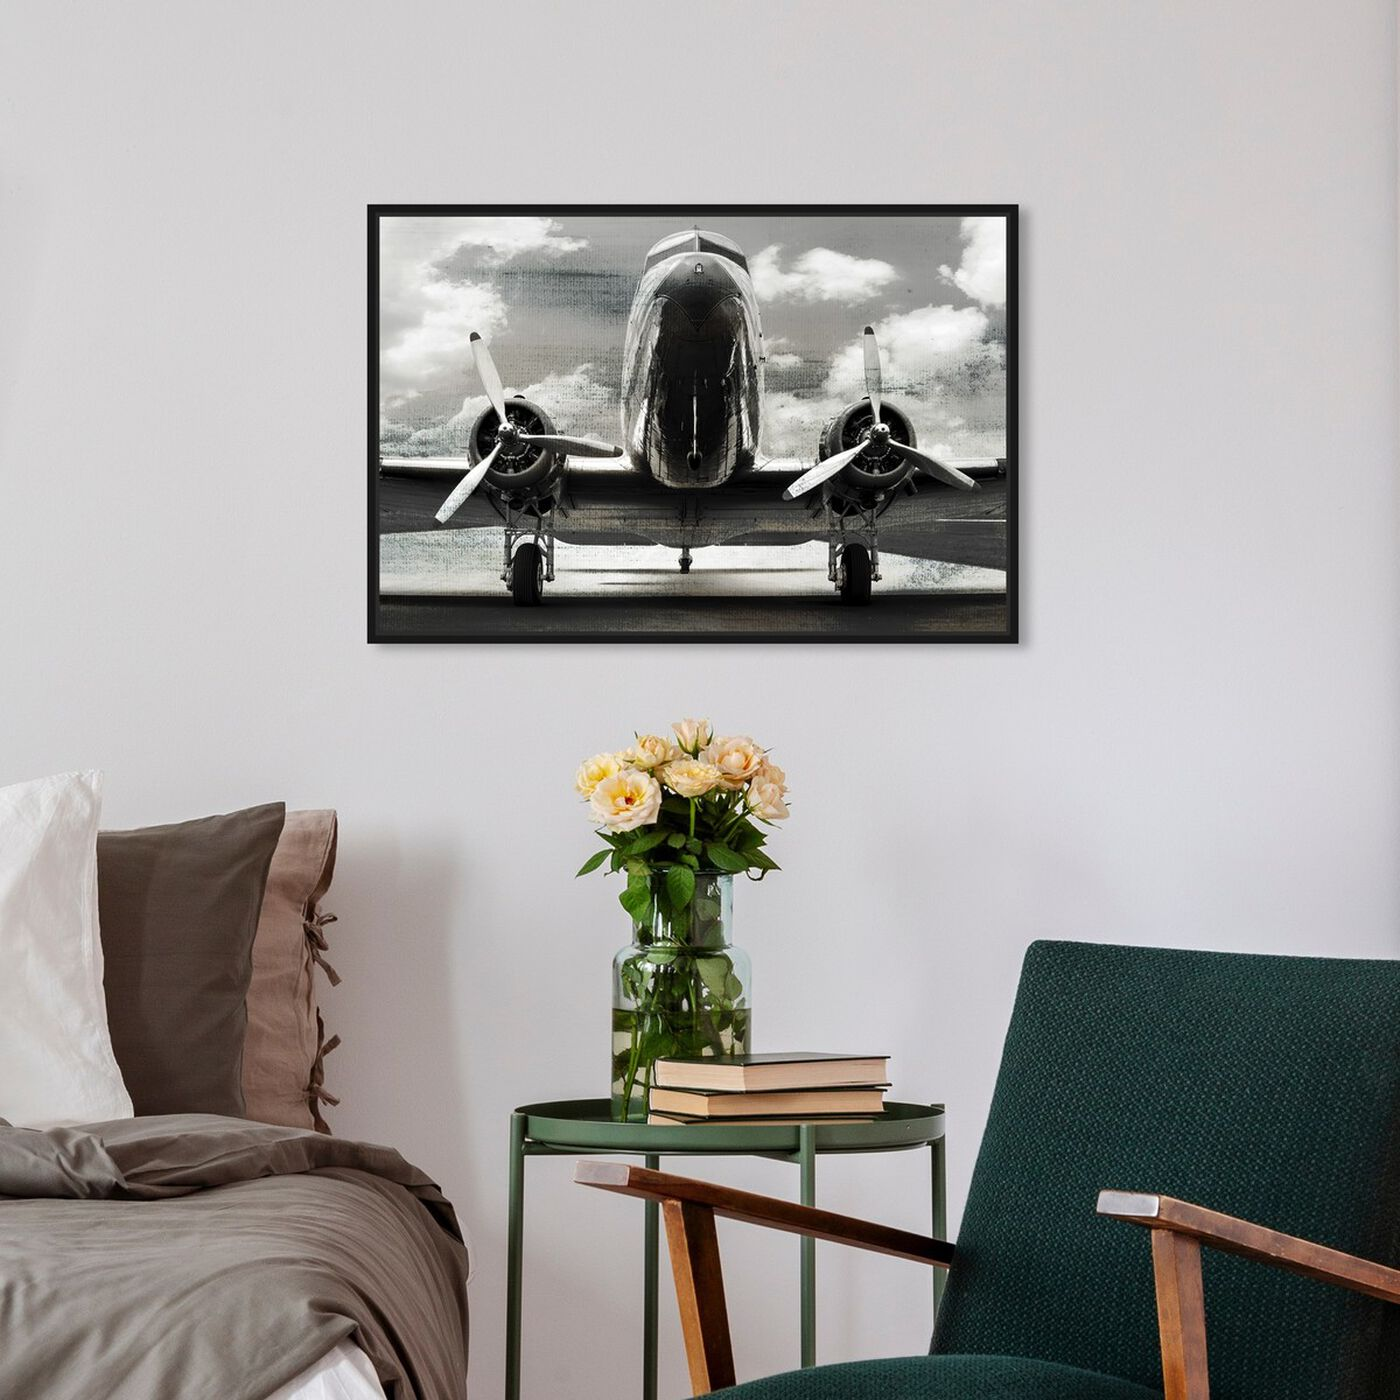 Hanging view of SAI - AEROPLANO featuring transportation and airplanes art.